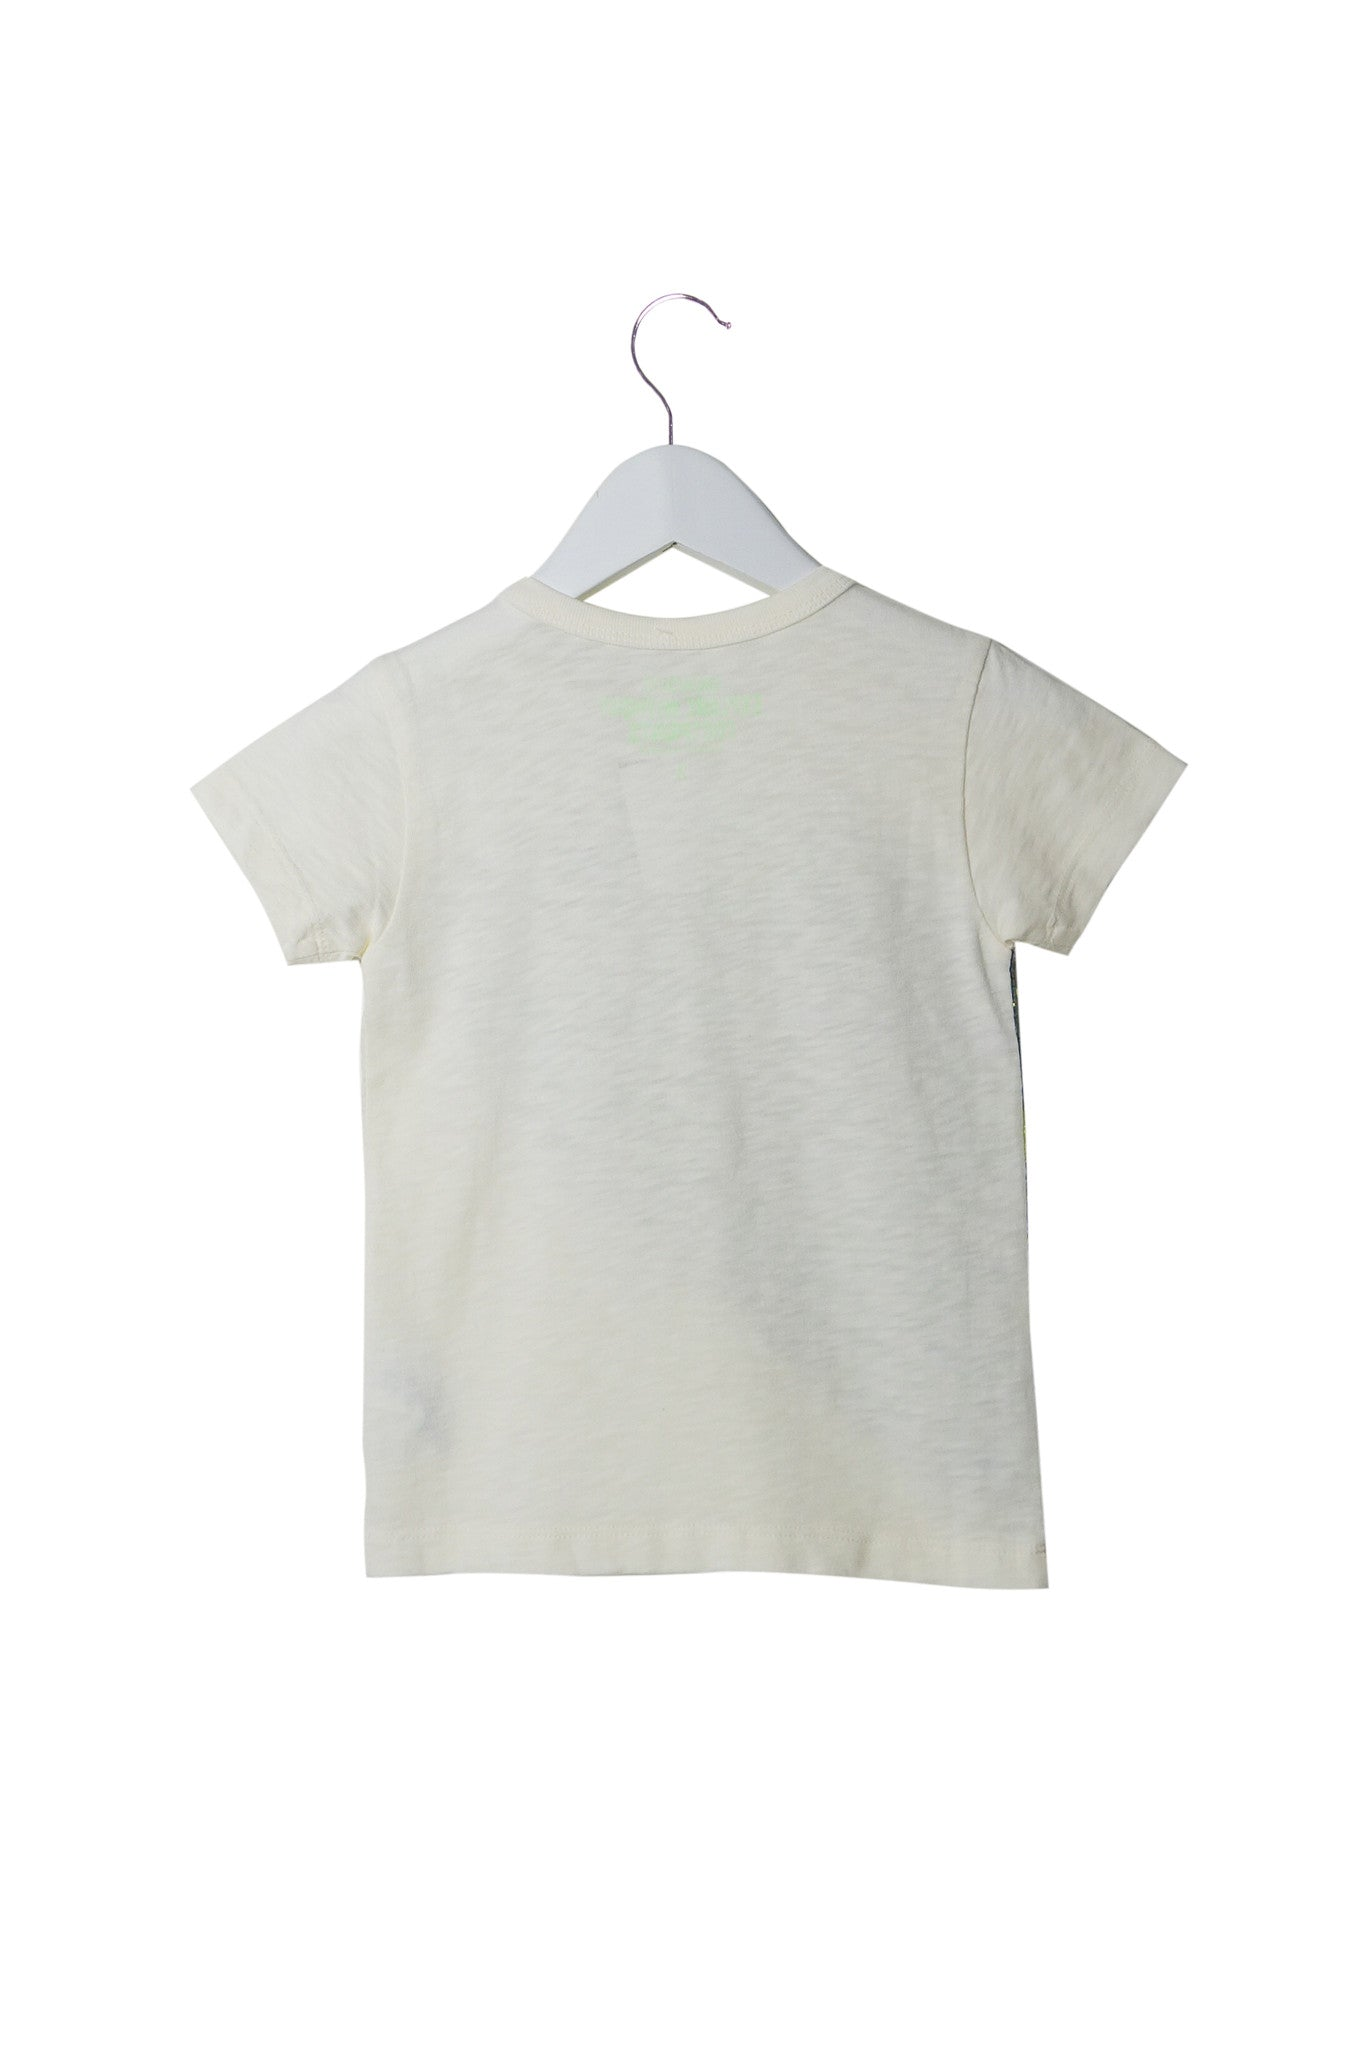 10002973 Crewcuts Kids~T-Shirt 3T at Retykle